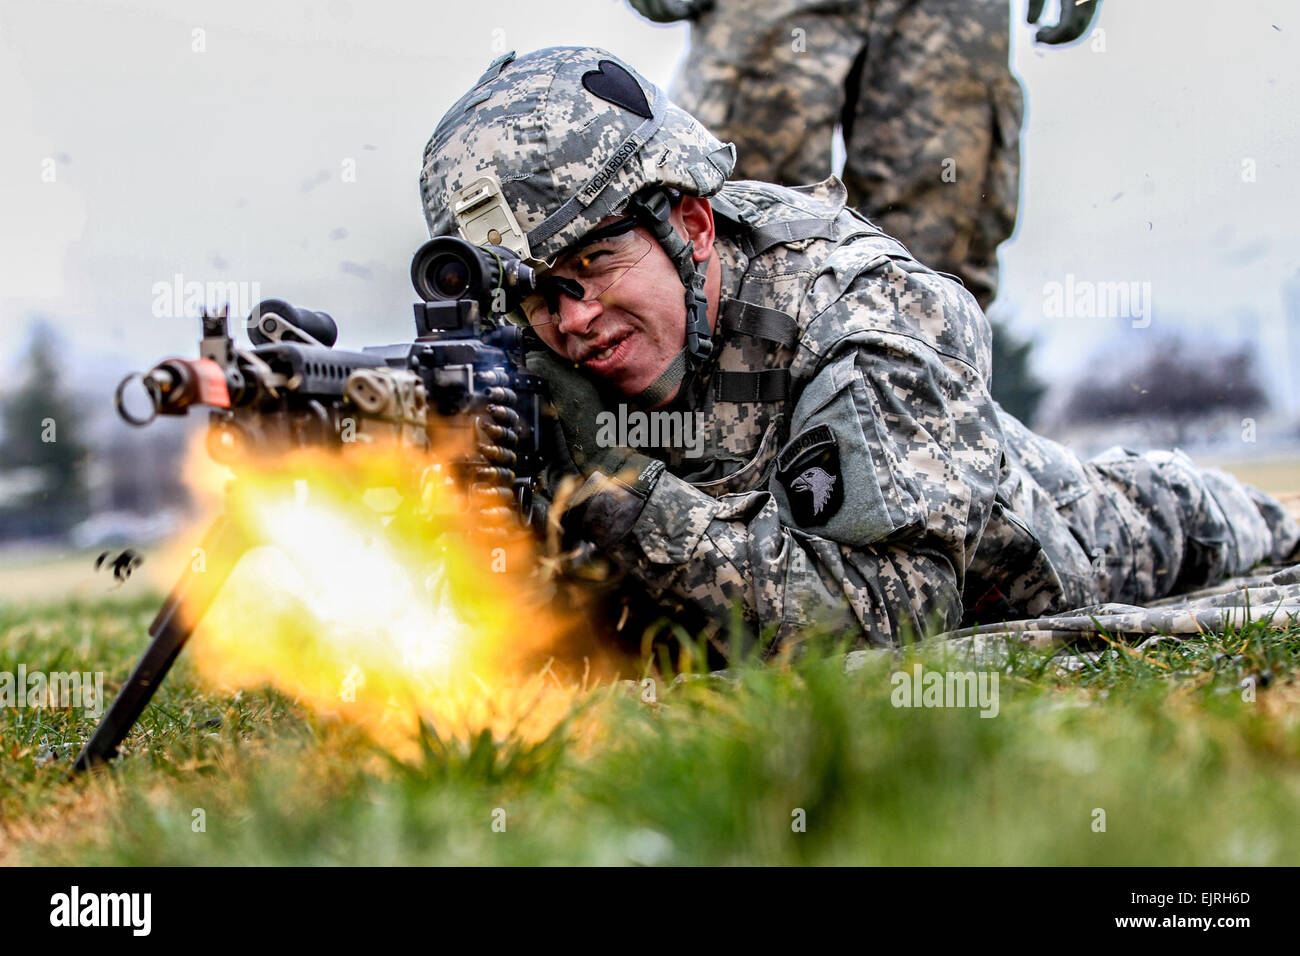 Squeezing the near freezing trigger of his machine gun, a Strike Soldier prepares for realistic combat environments - Stock Image